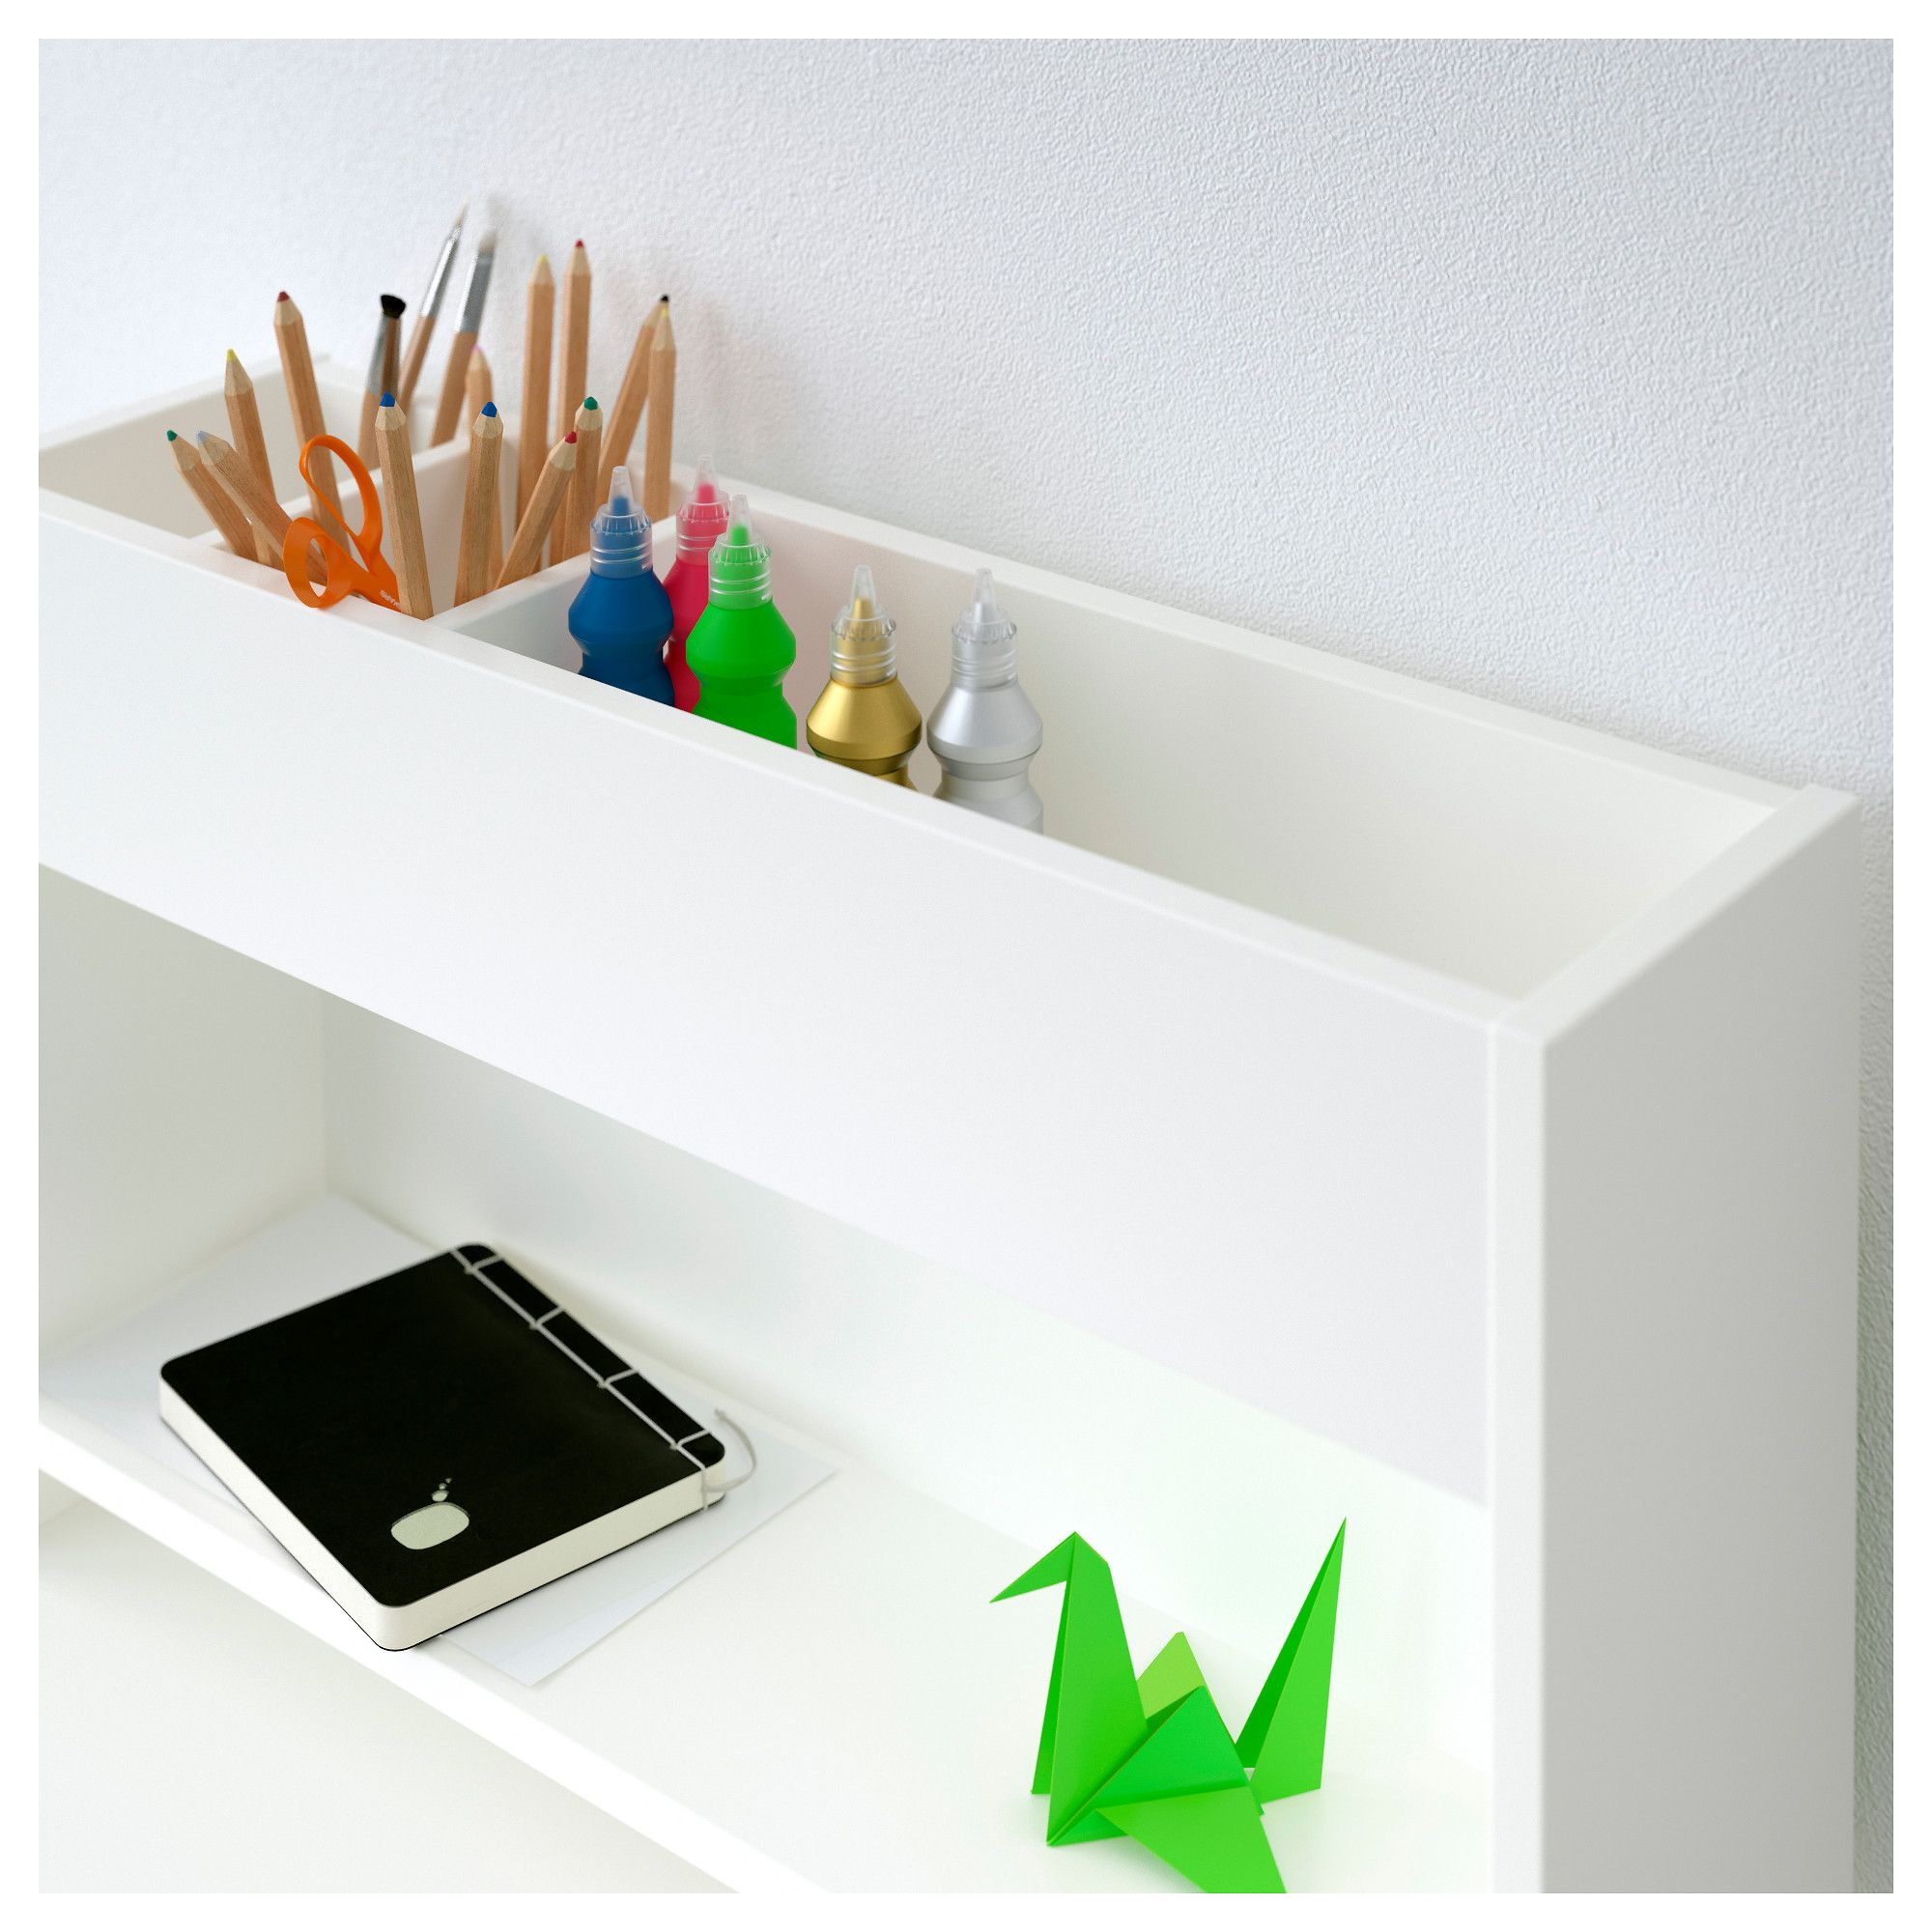 Ikea Usa All Products: IKEA - PÅHL Add-on Unit White, Green In 2019